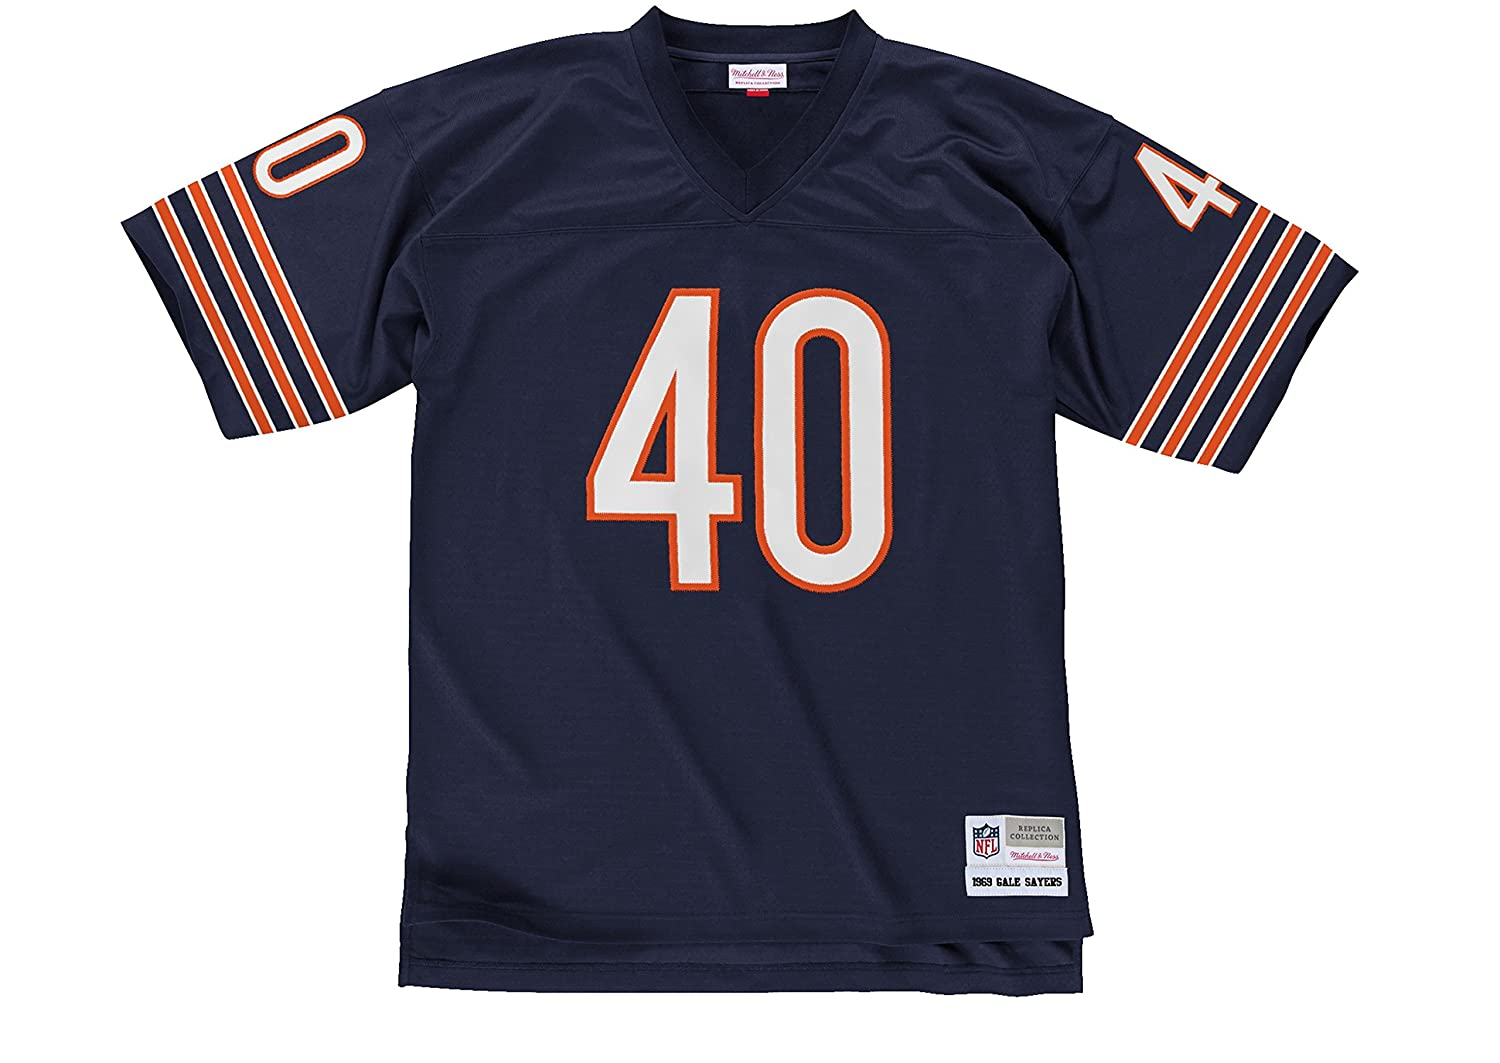 d4ff67c3 Amazon.com : Mitchell & Ness Gale Sayers Chicago Bears 1969 Throwback  Jersey : Sports & Outdoors